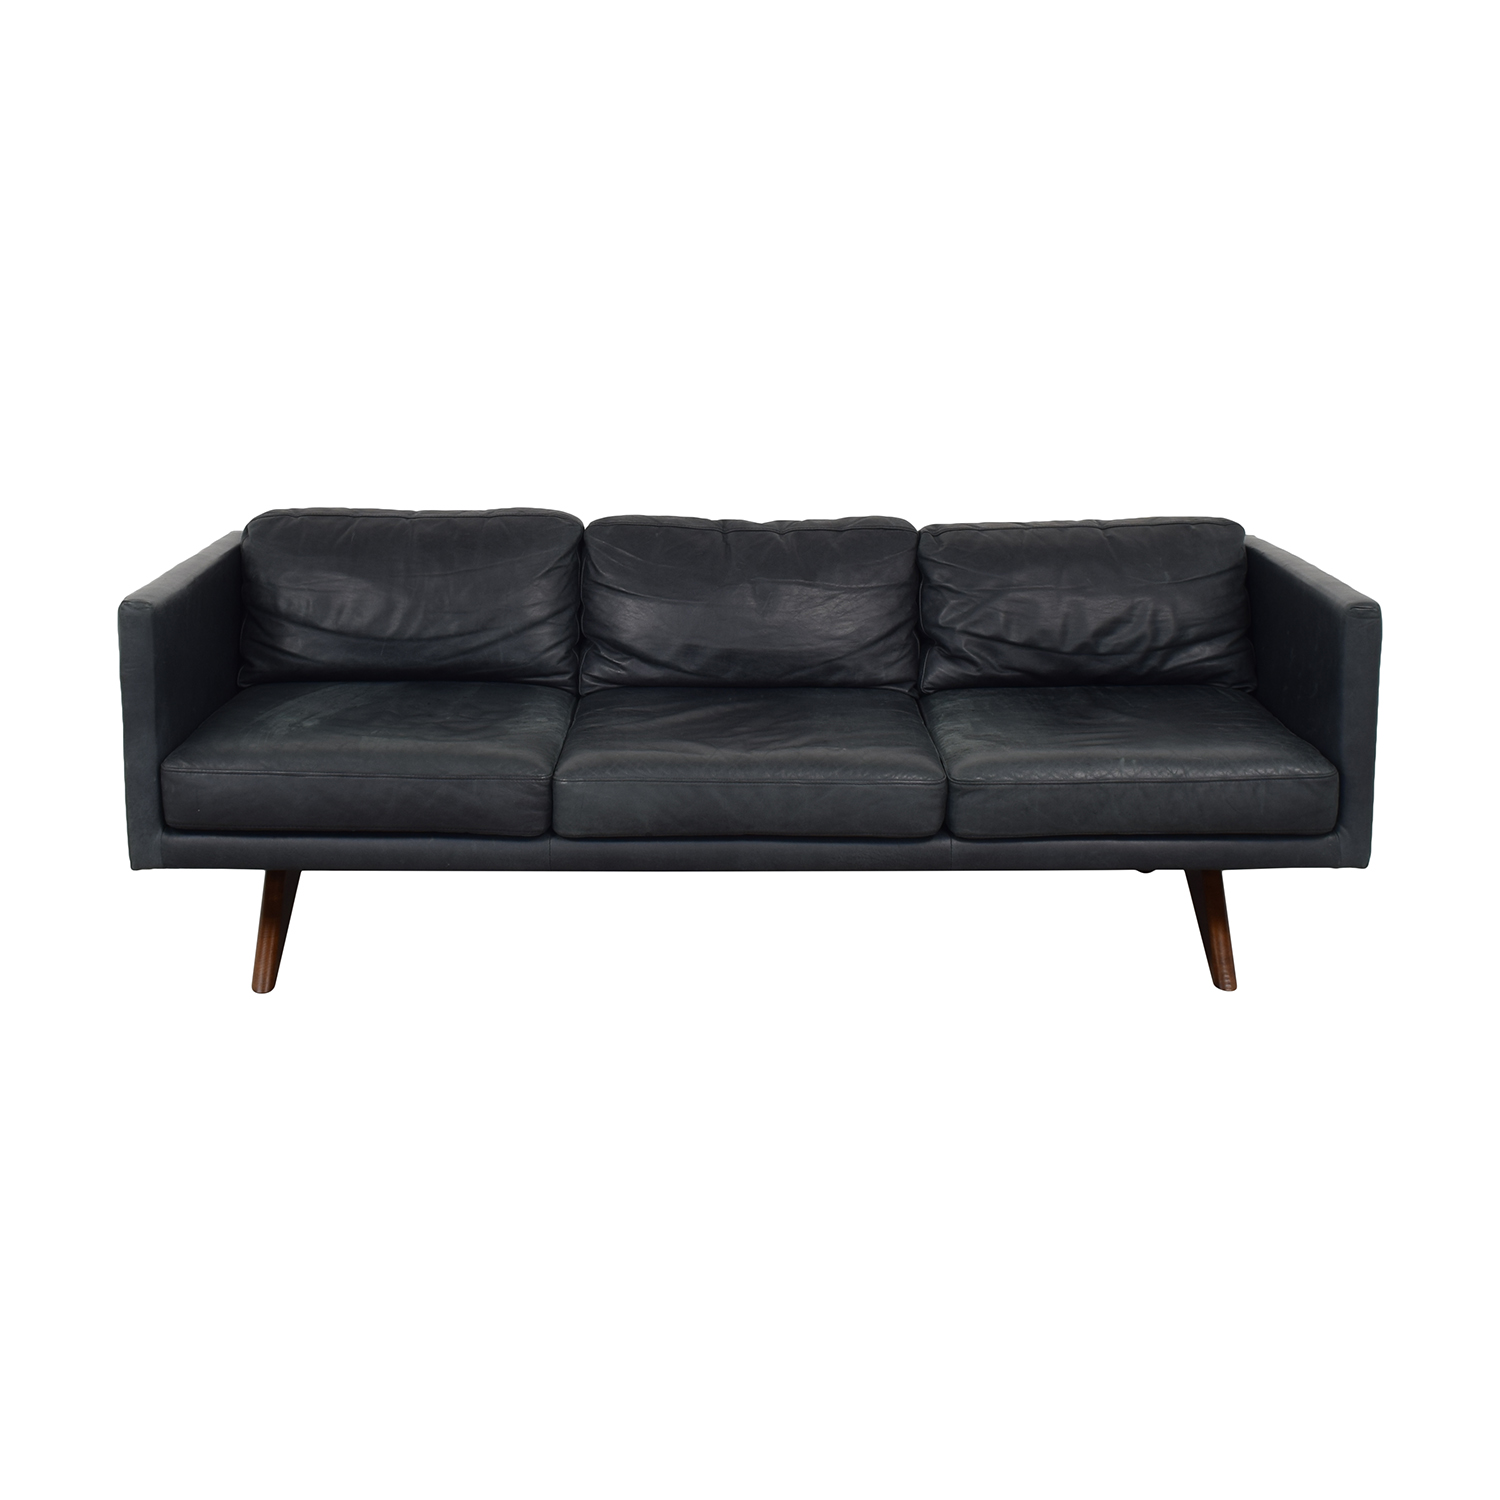 West Elm West Elm Brooklyn Mid Century Sofa nj